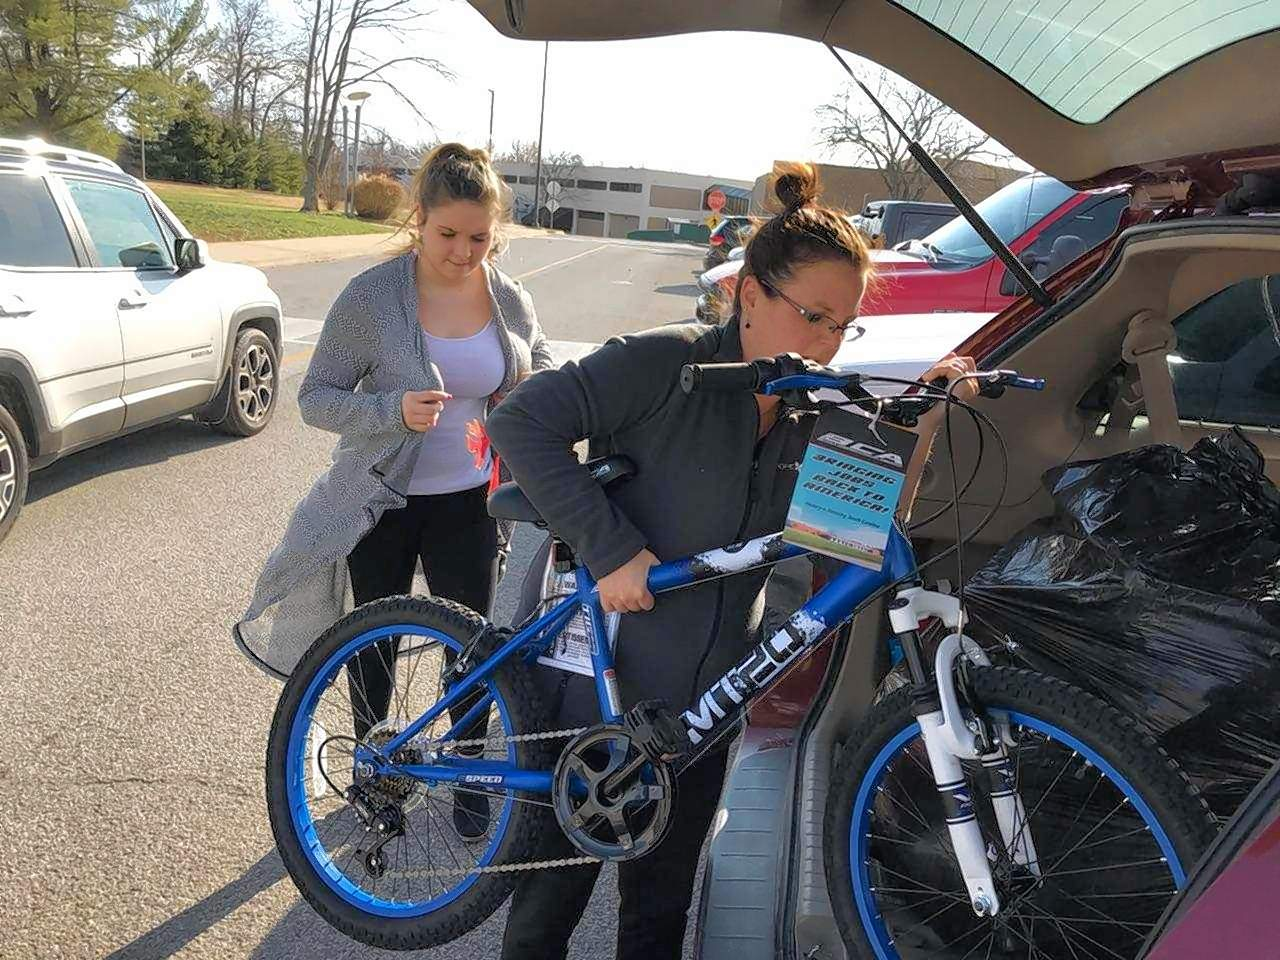 Niki Grajewski, clinical program manager at Centerstone, pushes a new bike into her vehicle to give to a needy child. With her is Jayden Stanley, a volunteer with the Poshard Foundation.